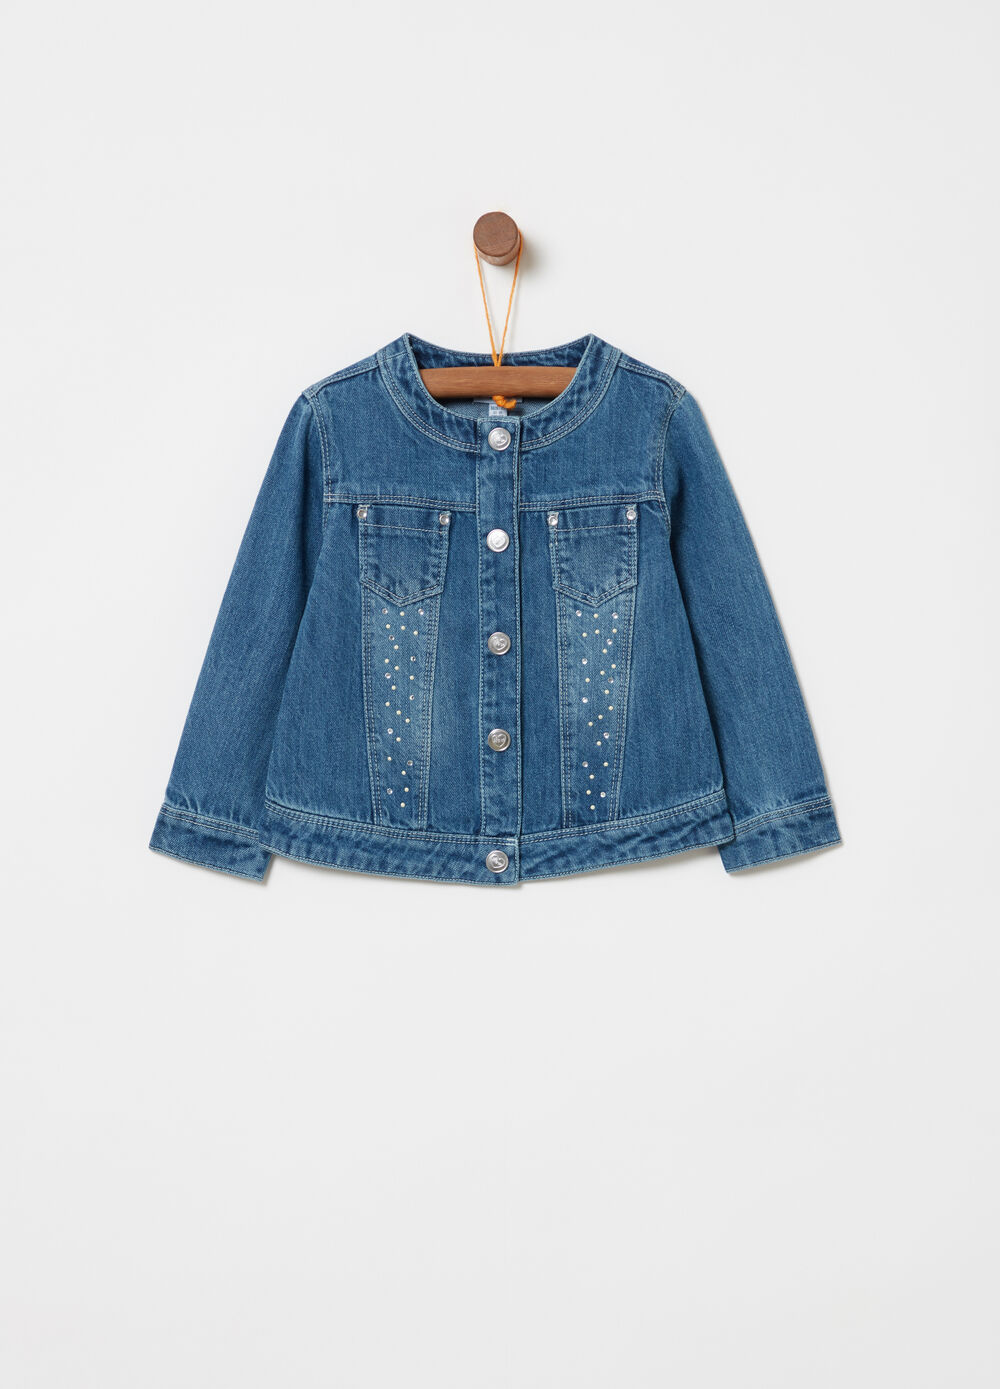 Denim jacket with beads and diamantés